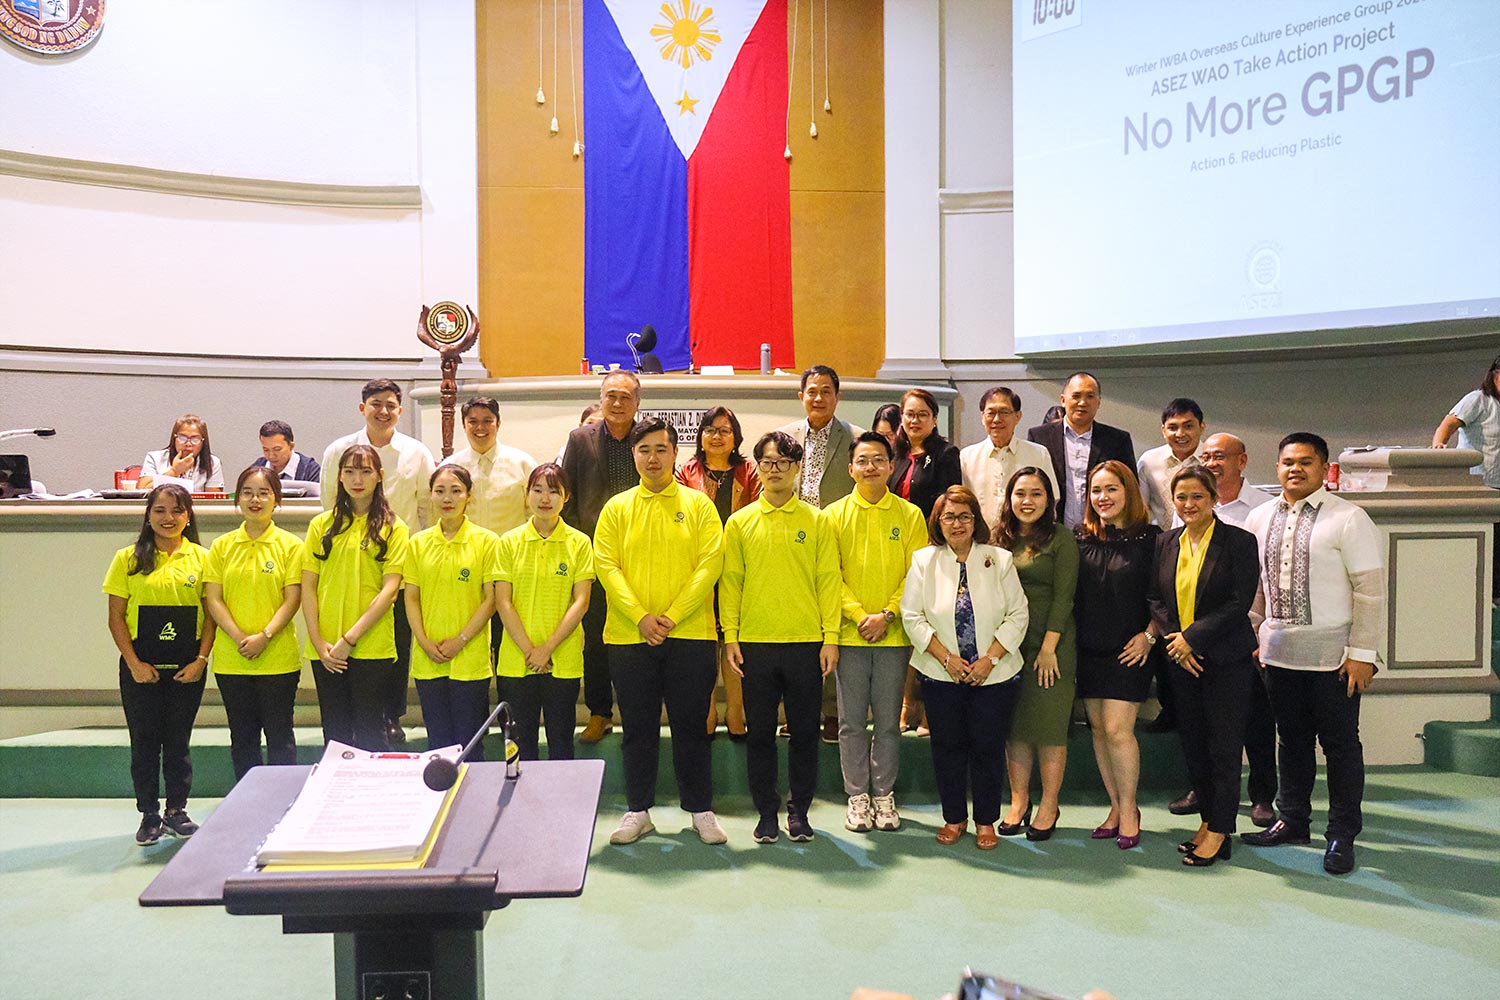 City Council of Davao City, Philippines